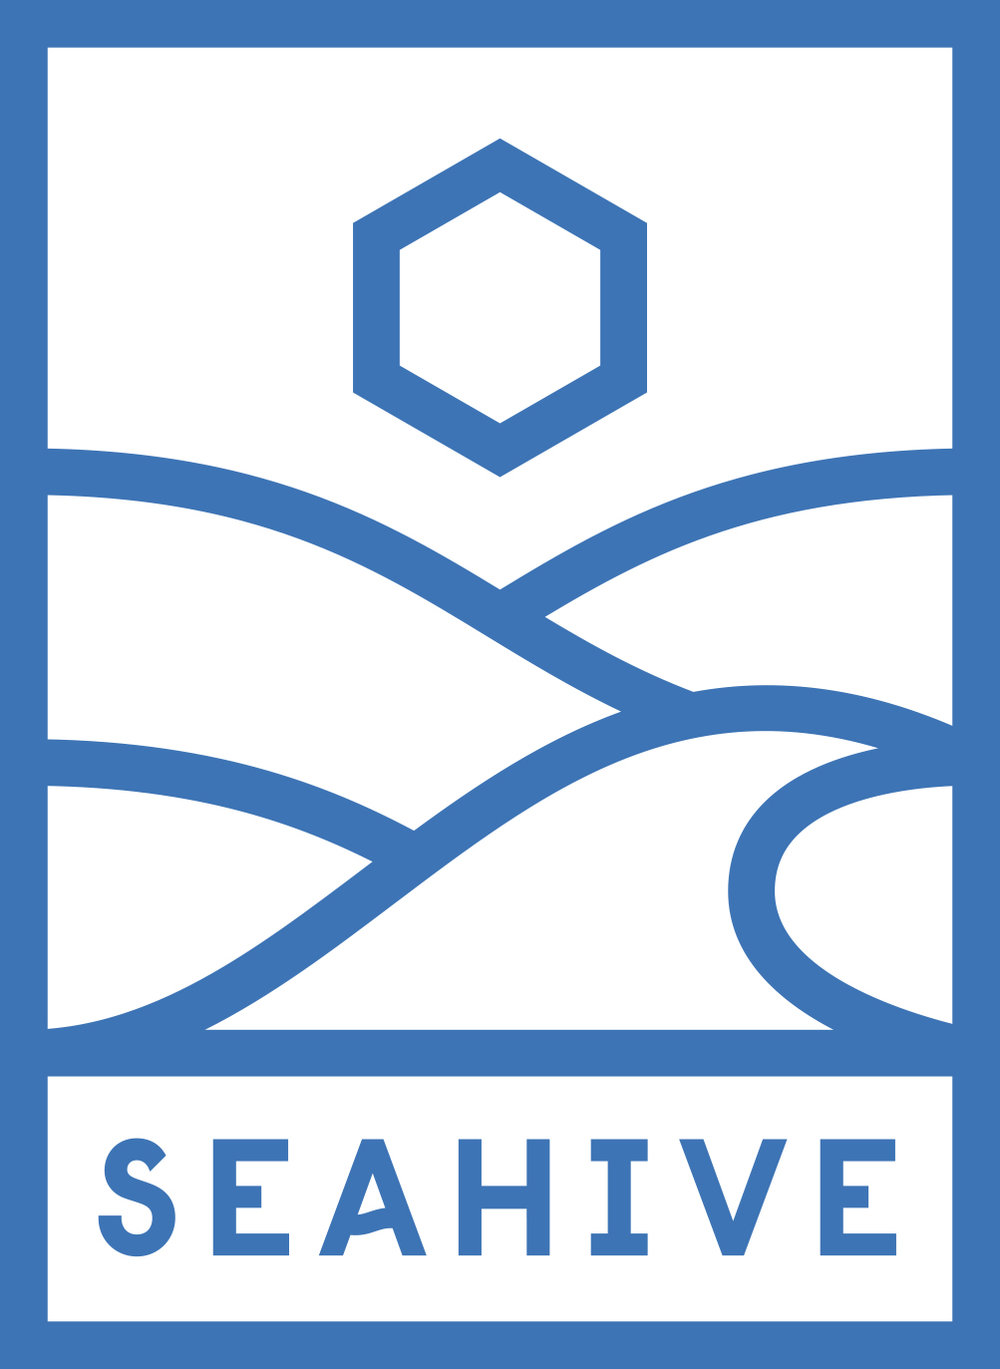 Seahive_Badge_Blue.jpg